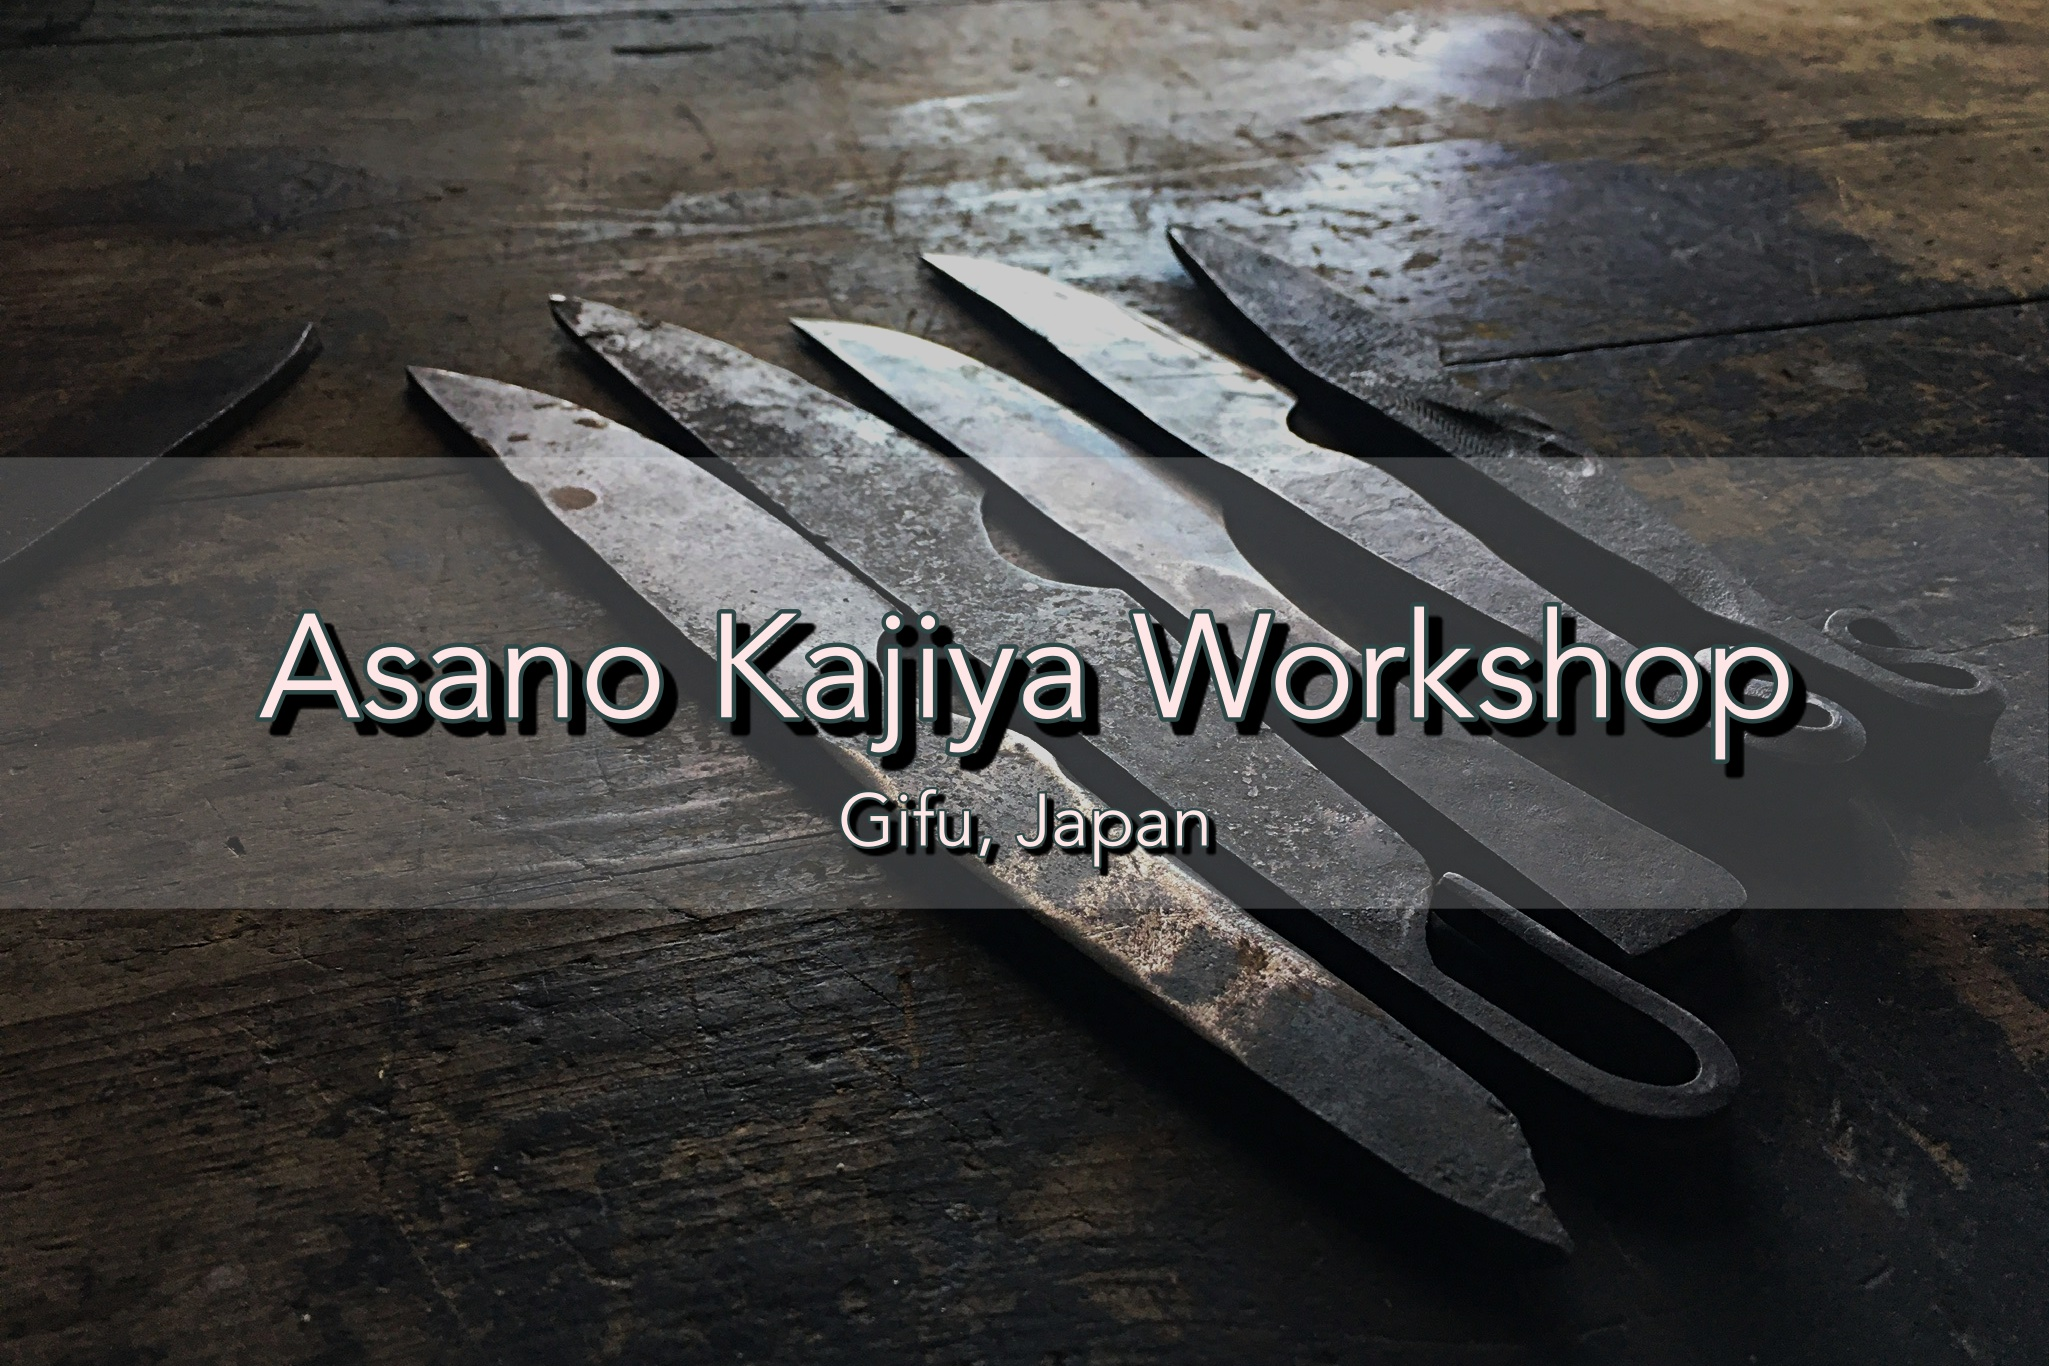 Five hand forged knives on a rustic wooden table crafted by master sword smith Fusataro. Text overlay reads Asano Kajiya Workshop Gifu, Japan.